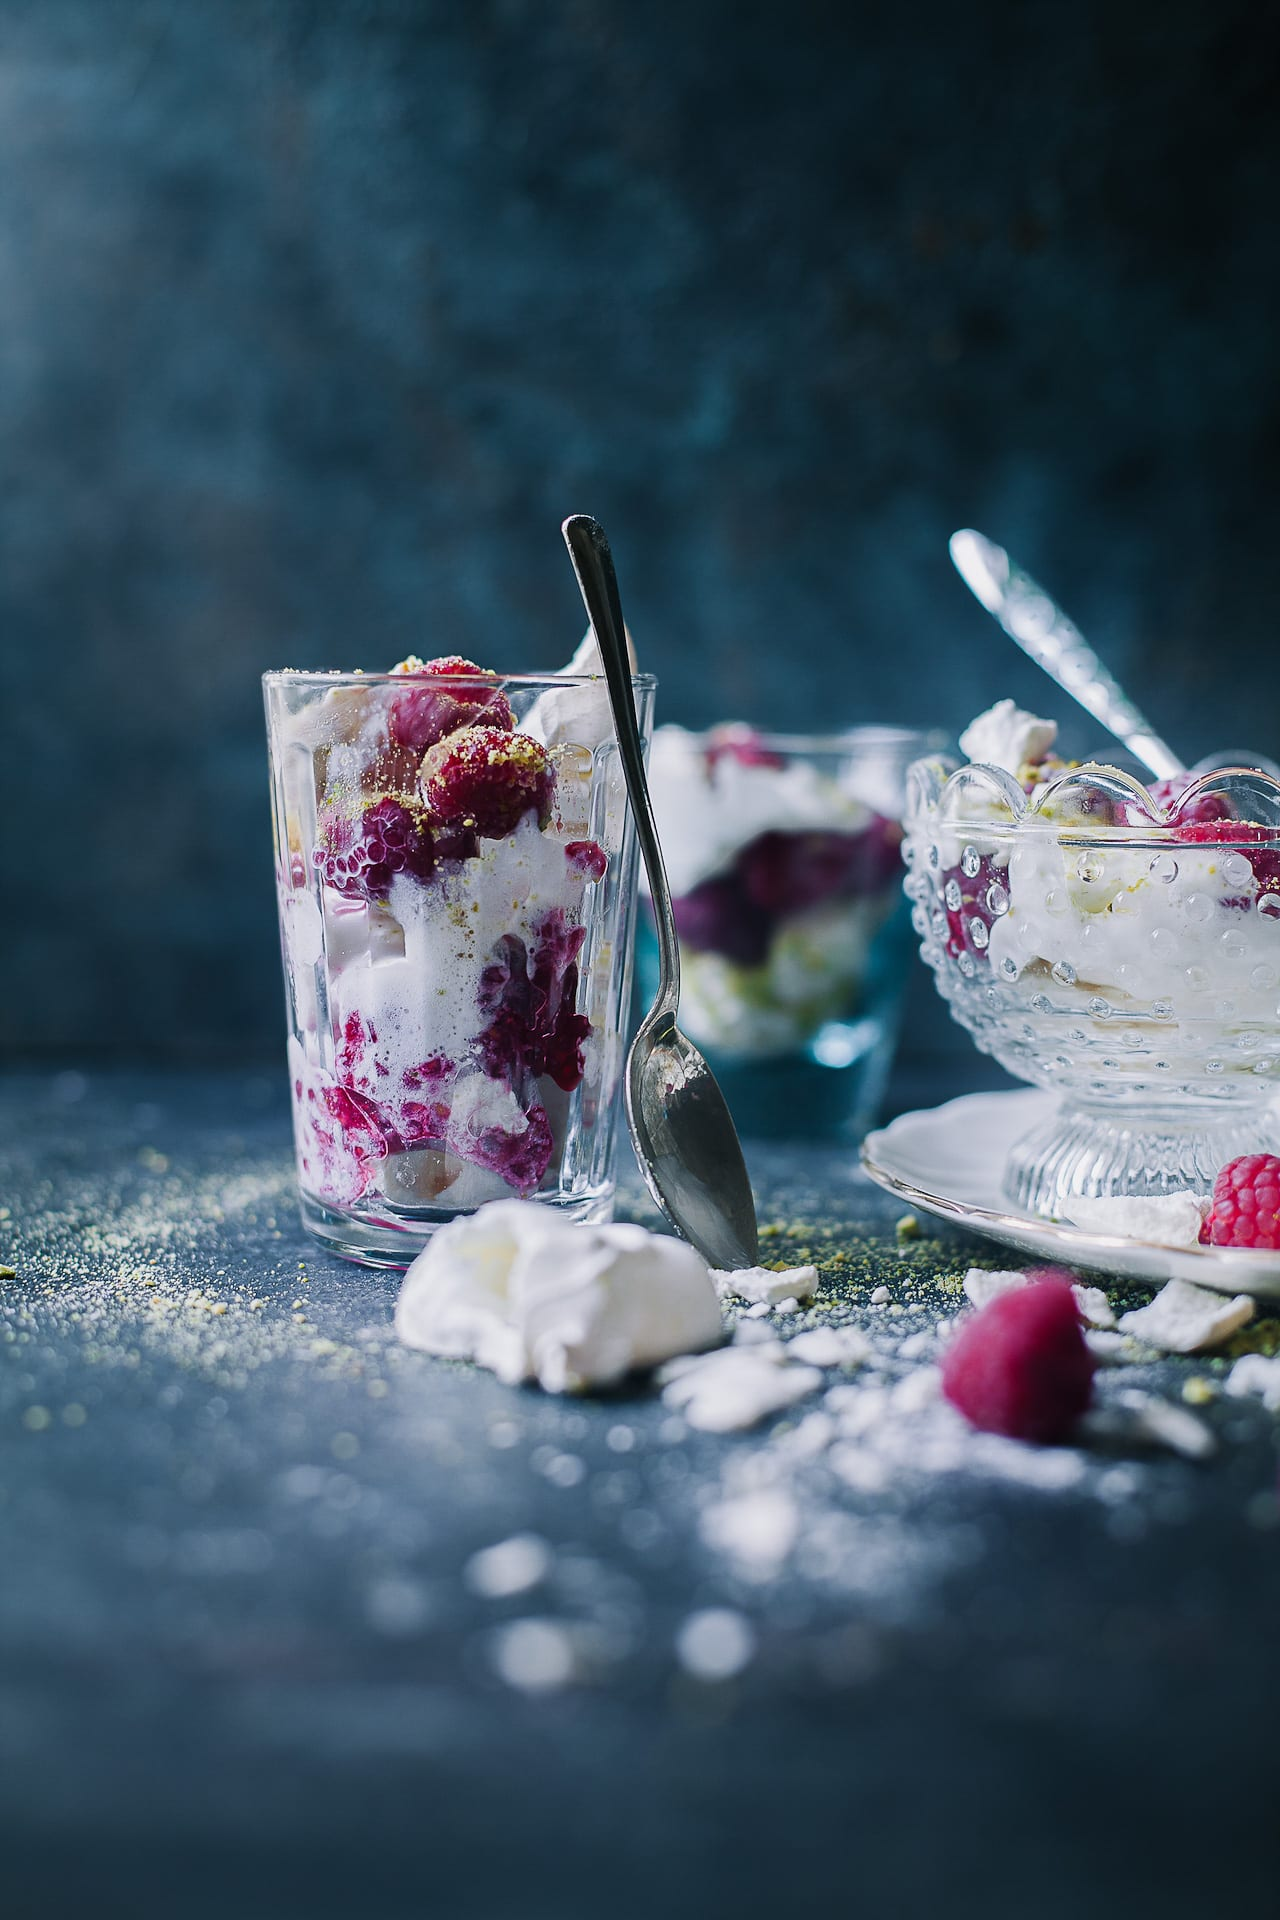 Raspberry Pistachio Eton Mess | Playful Cooking